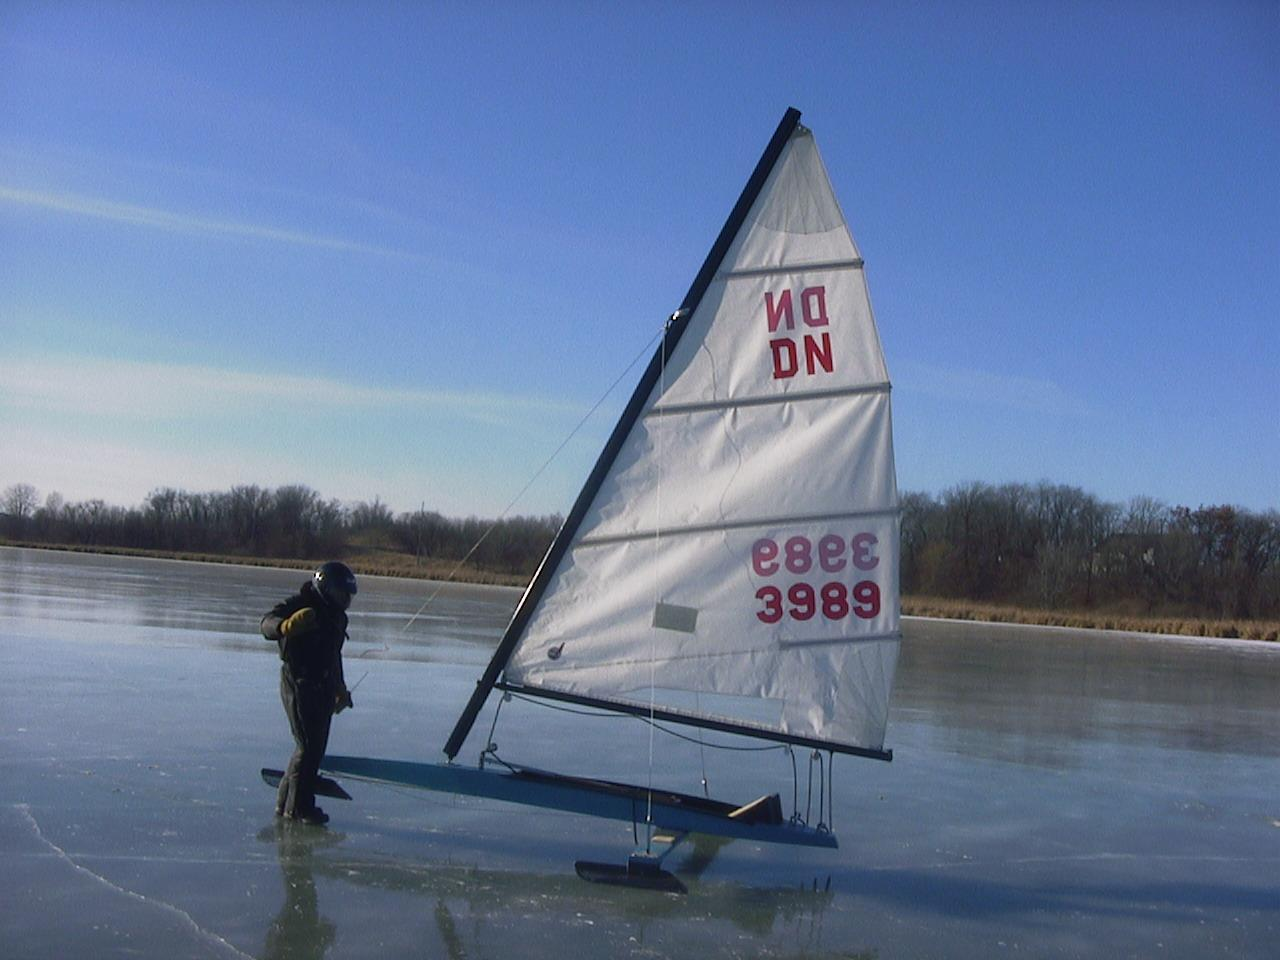 Dn Ice Boat Plans quid us ice circle lake